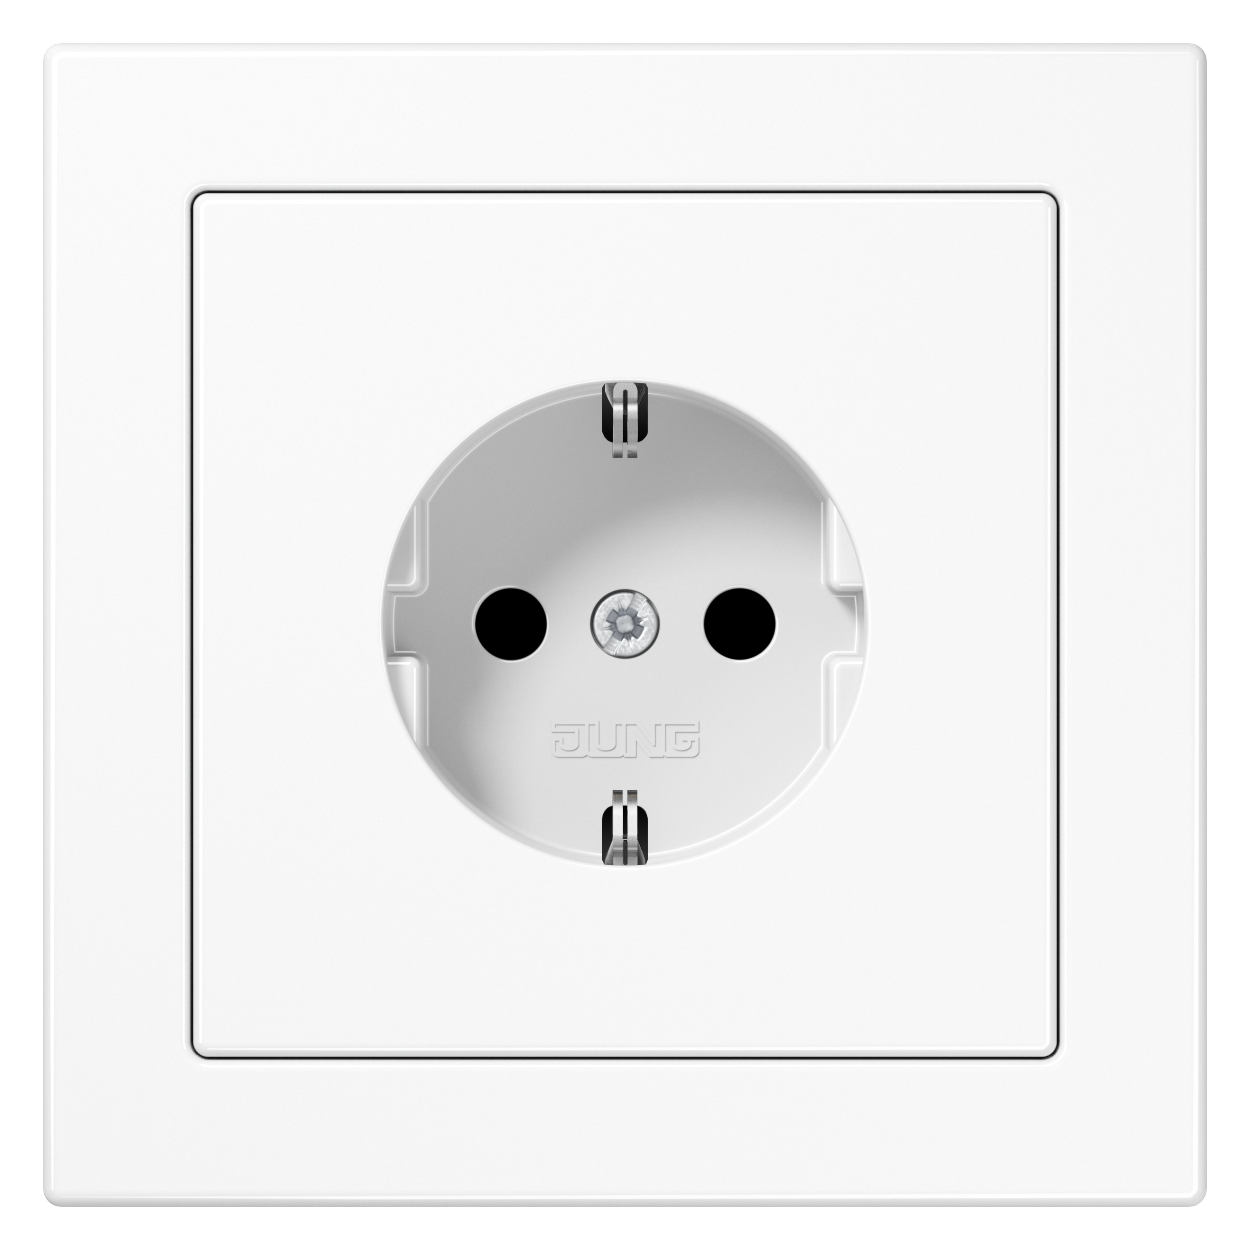 JUNG_LS_Design_white_socket